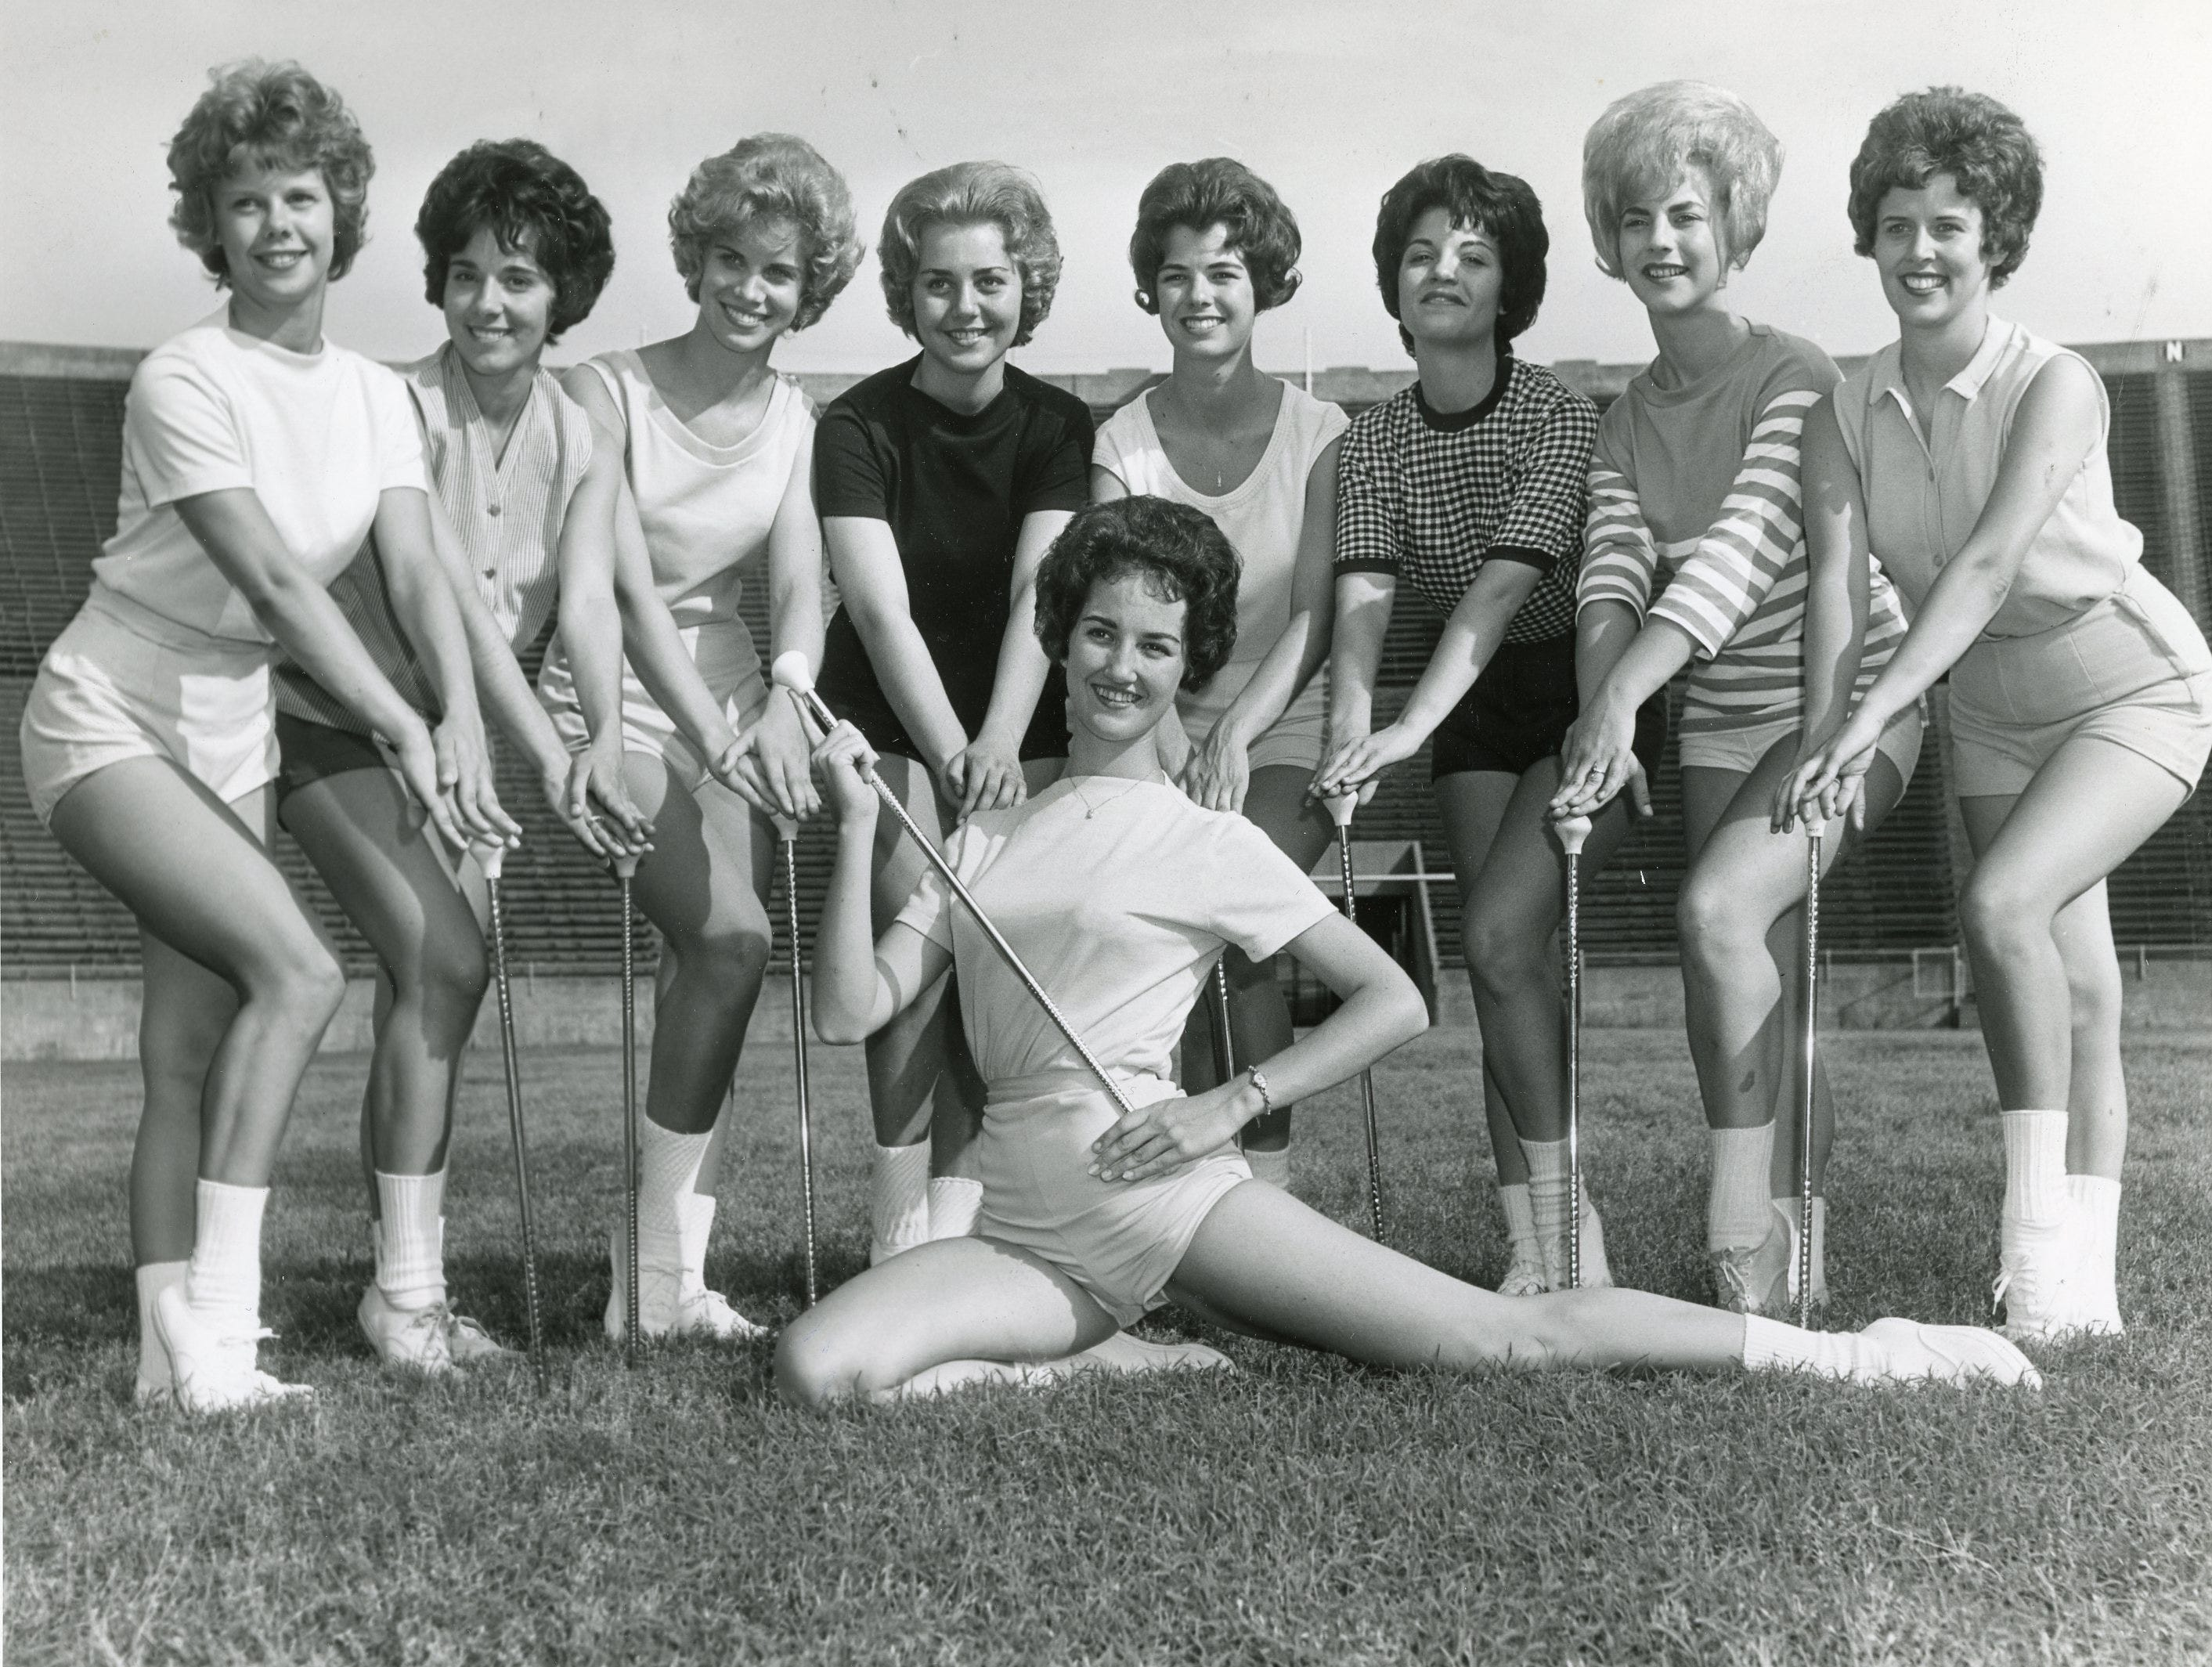 UT majorettes, May, 1962 included (front) Claudette Riley; (back) Mary Nicholon, Marcia Austin, Judy Barton, Judy Bailey, Bette Carlson, Betty Sue Little, DeAnna Smith and Marlene Bagwell.